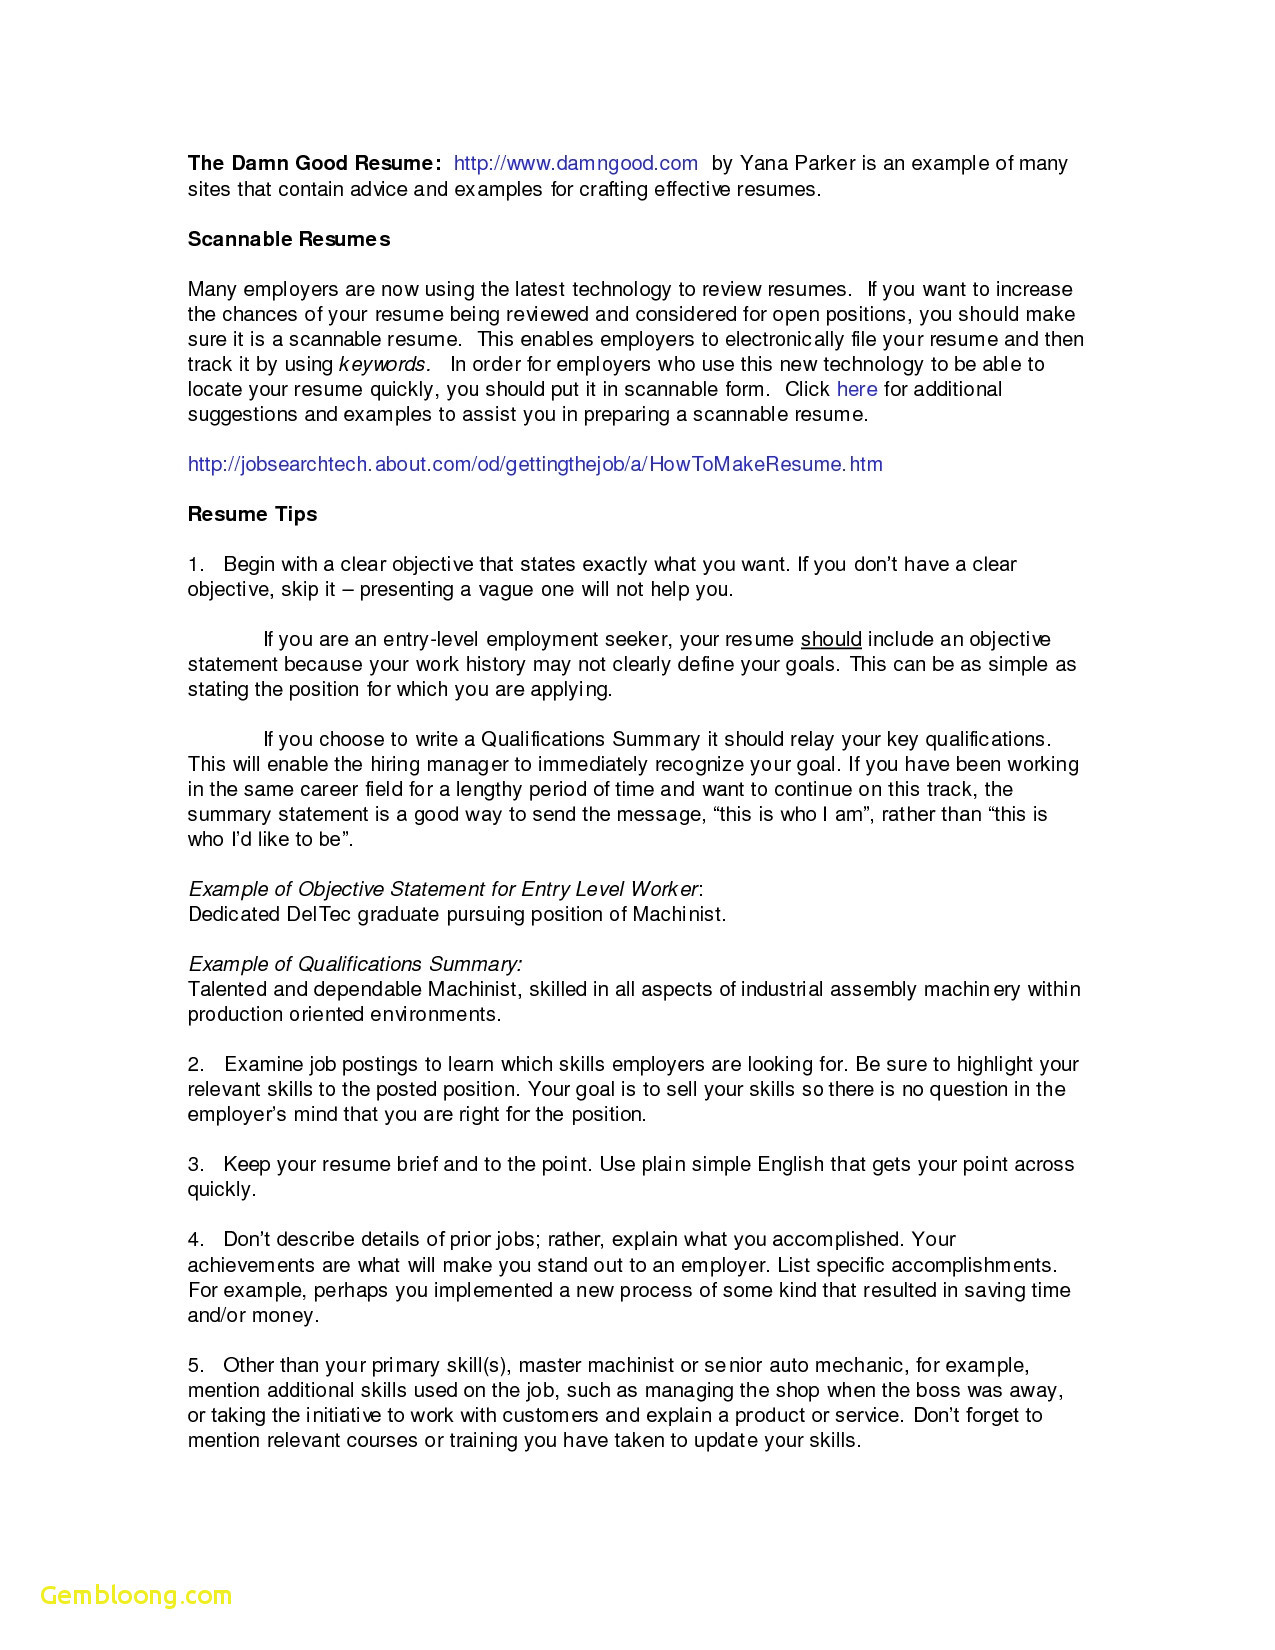 Software Engineer Resume Summary - Sample Resume for Senior software Engineer Recent software